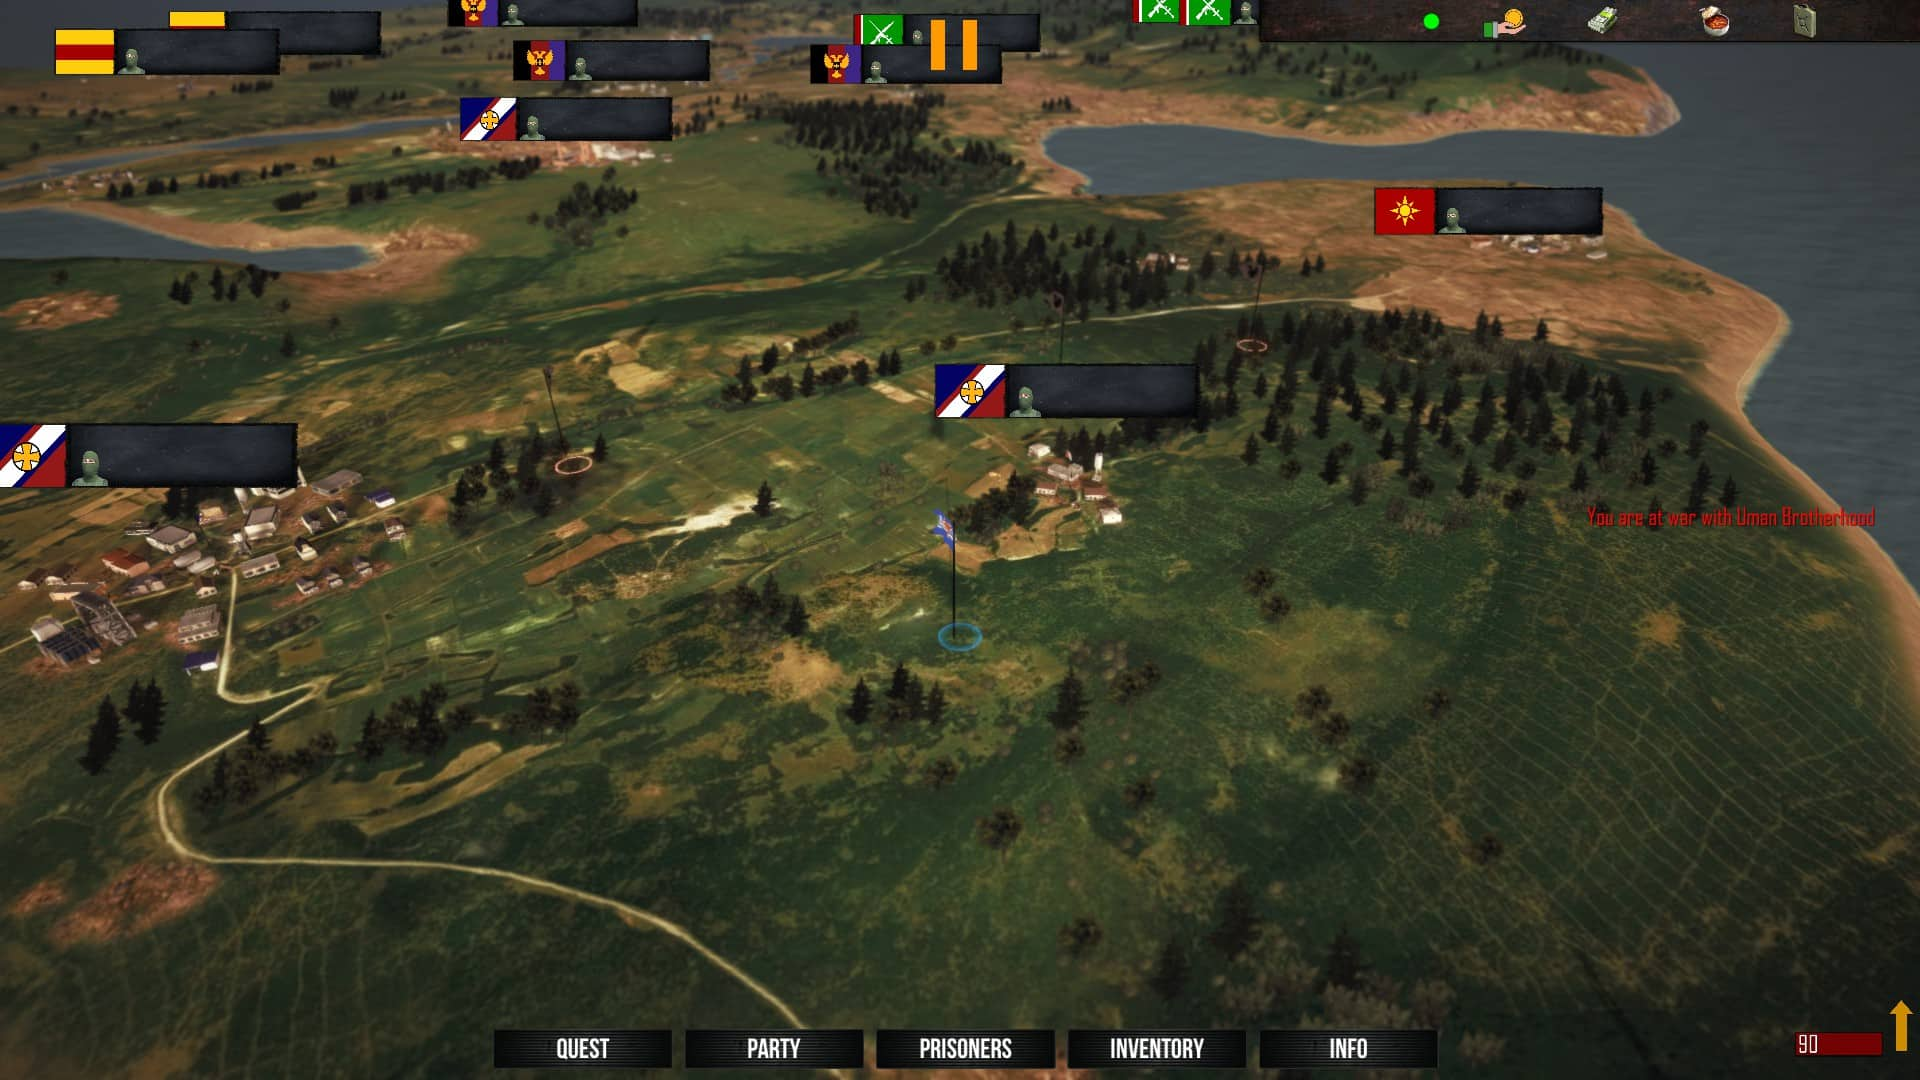 freeman guerrilla warfare linux steam play proton in game screenshot